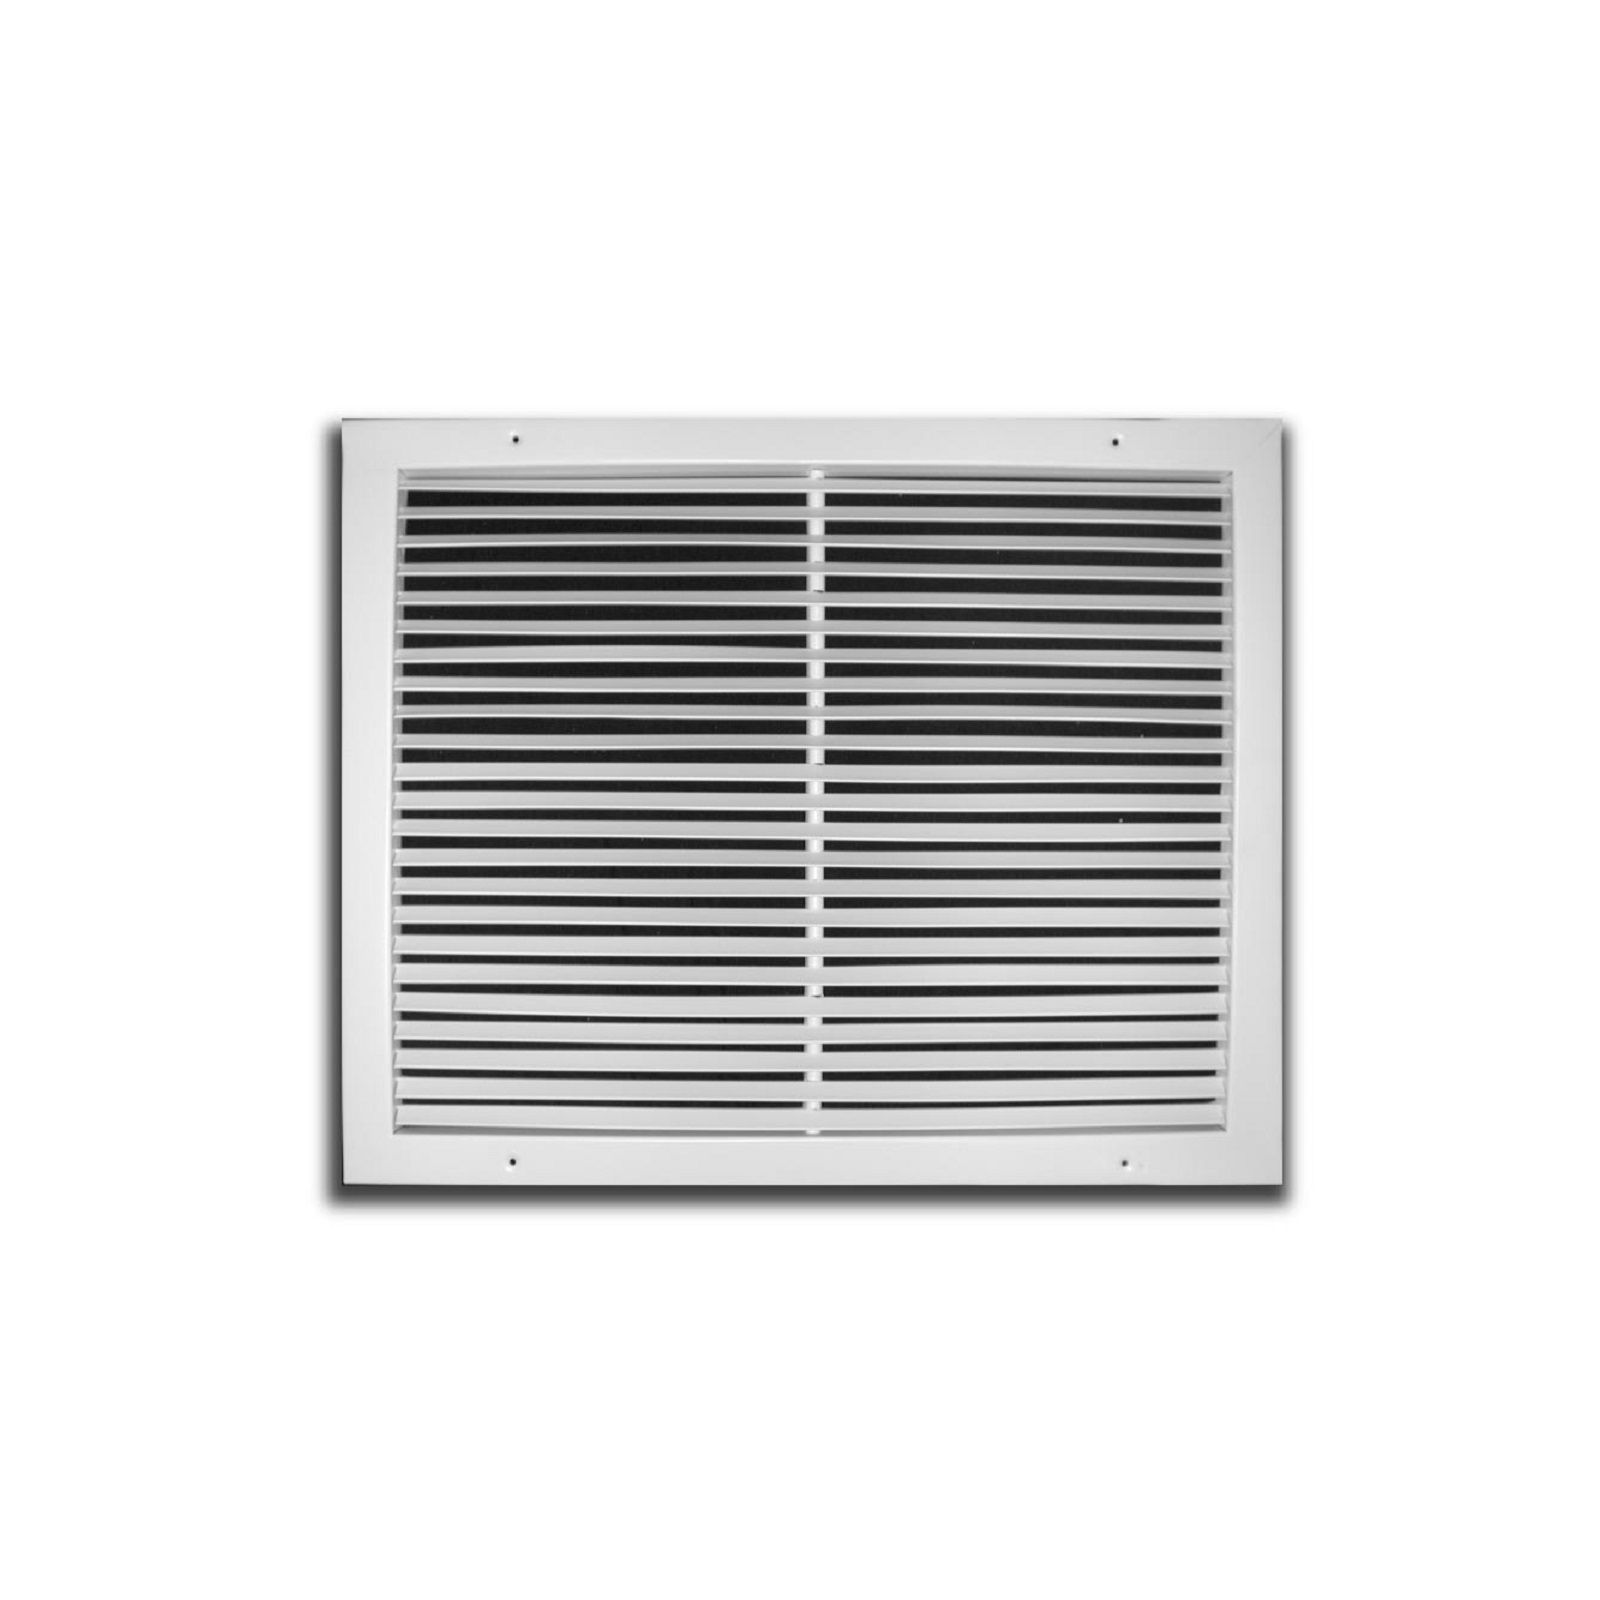 "TRUaire 270 10X10 - Steel Fixed Bar Return Air Grille, White, 10"" X 10"""